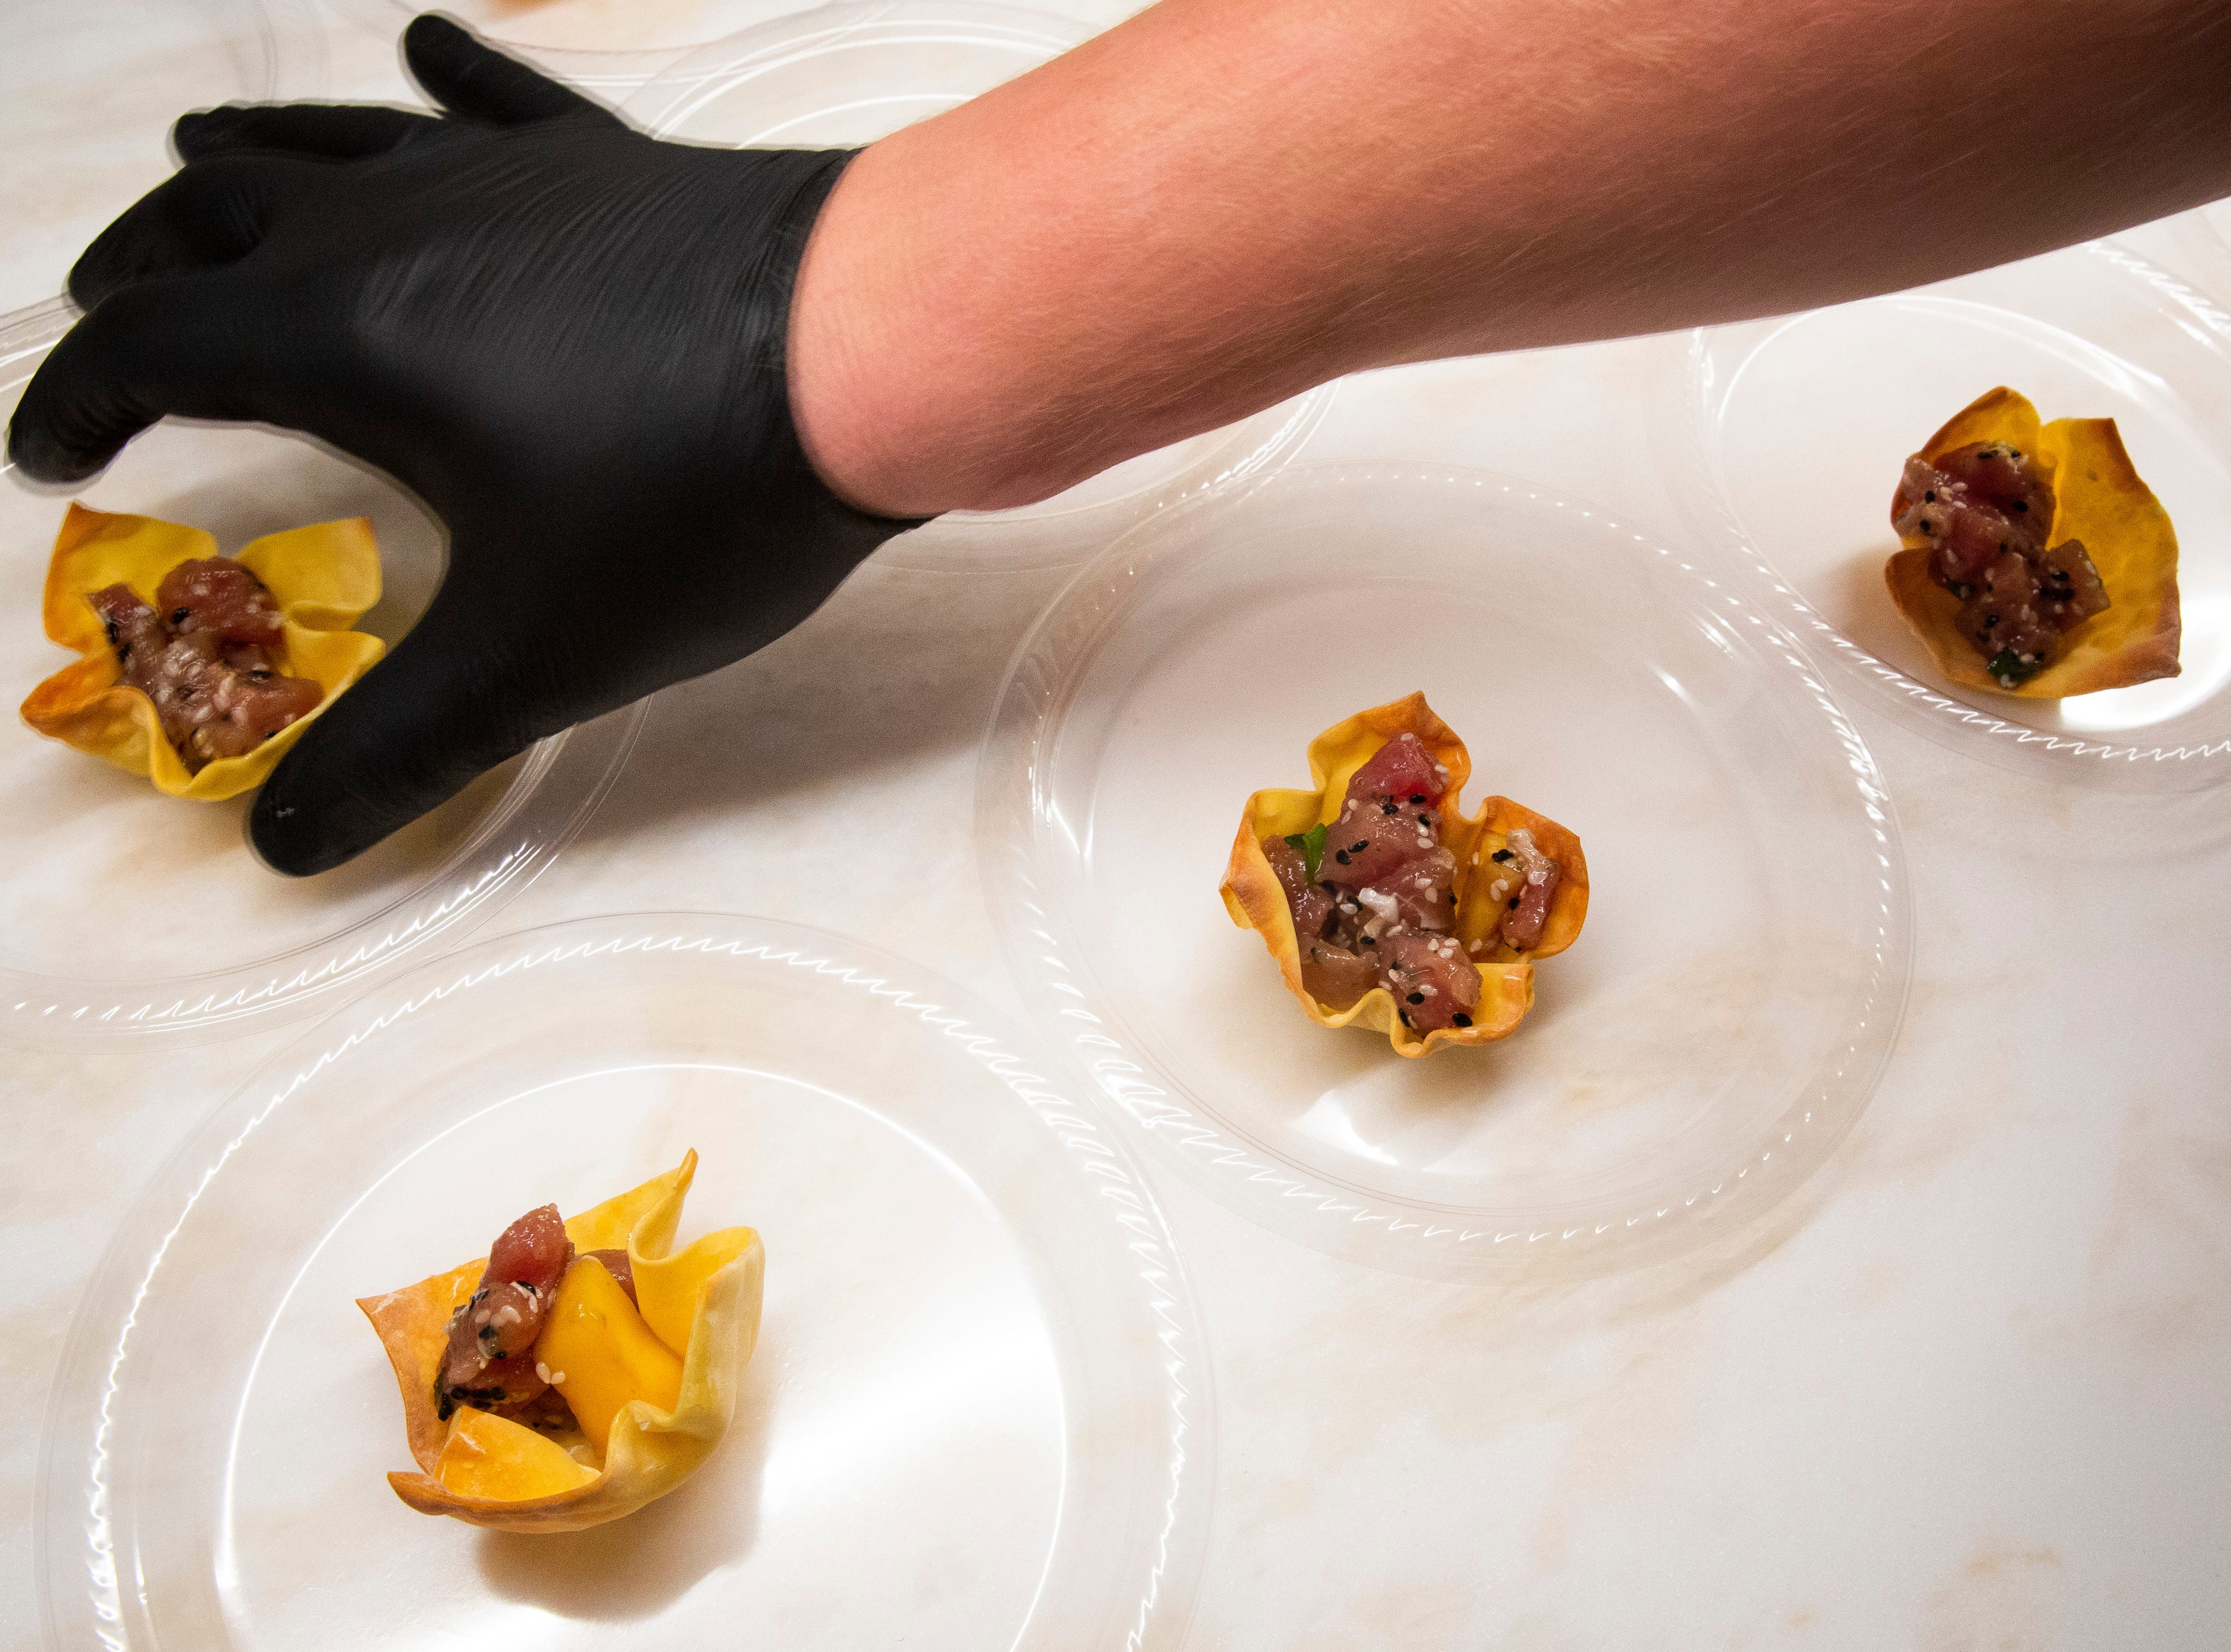 Chef Chris Renninghoff prepares a tuna poke dish during the 7th annual Kitchen Tour, hosted by the Naples Woman's Club in Naples on Wednesday, January 16, 2019.